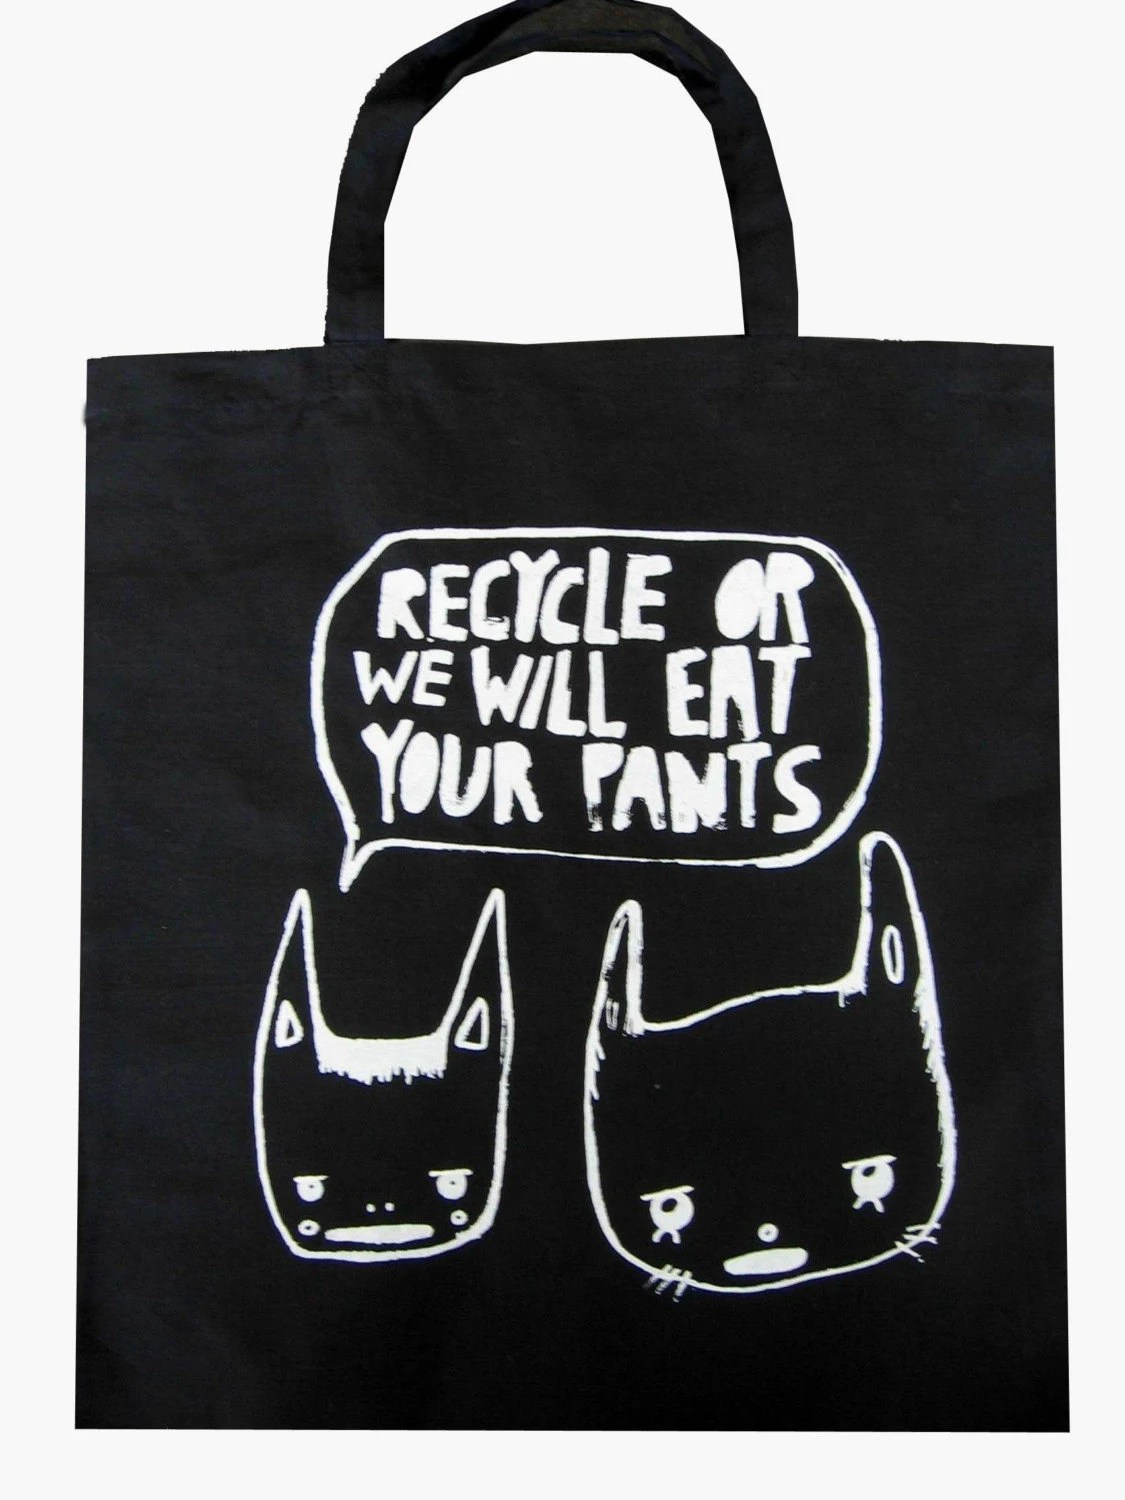 Recycle or these animals are going to eat your pants - tote